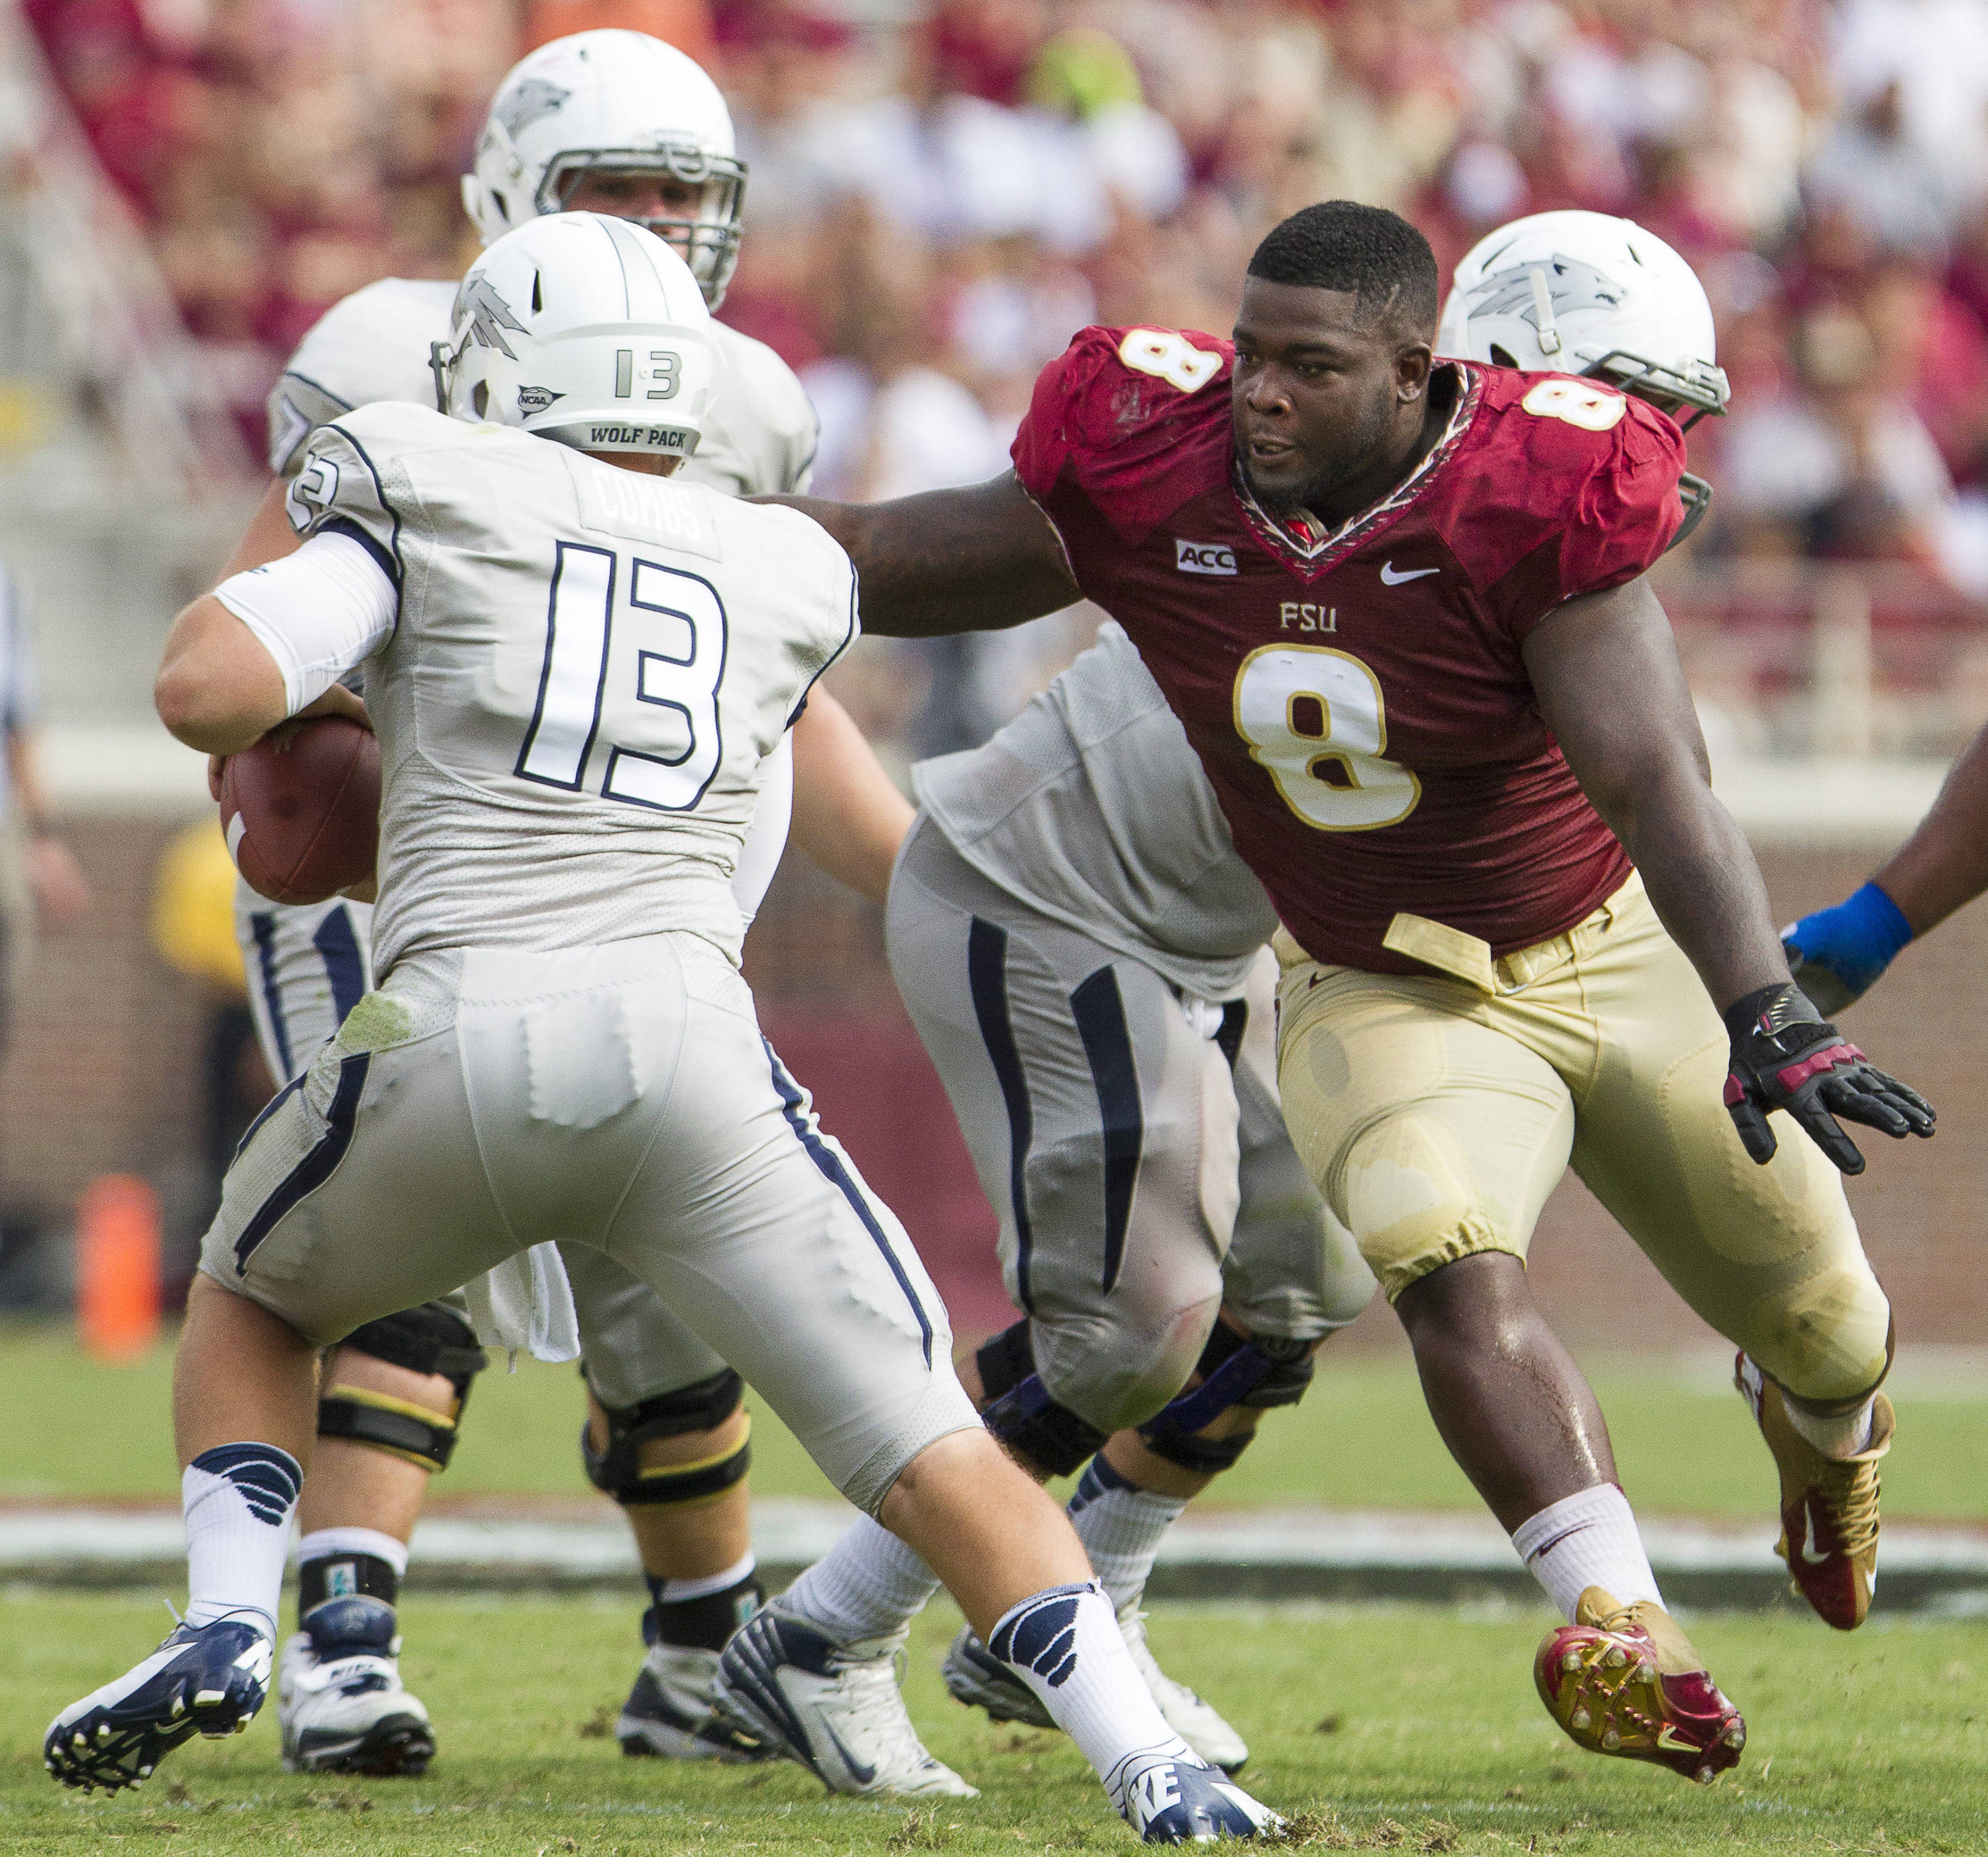 Timmy Jernigan (8) runs after a the ball carrier during FSU's 62-7 win over Nevada on Saturday, Sept 14, 2013 in Tallahassee, Fla.